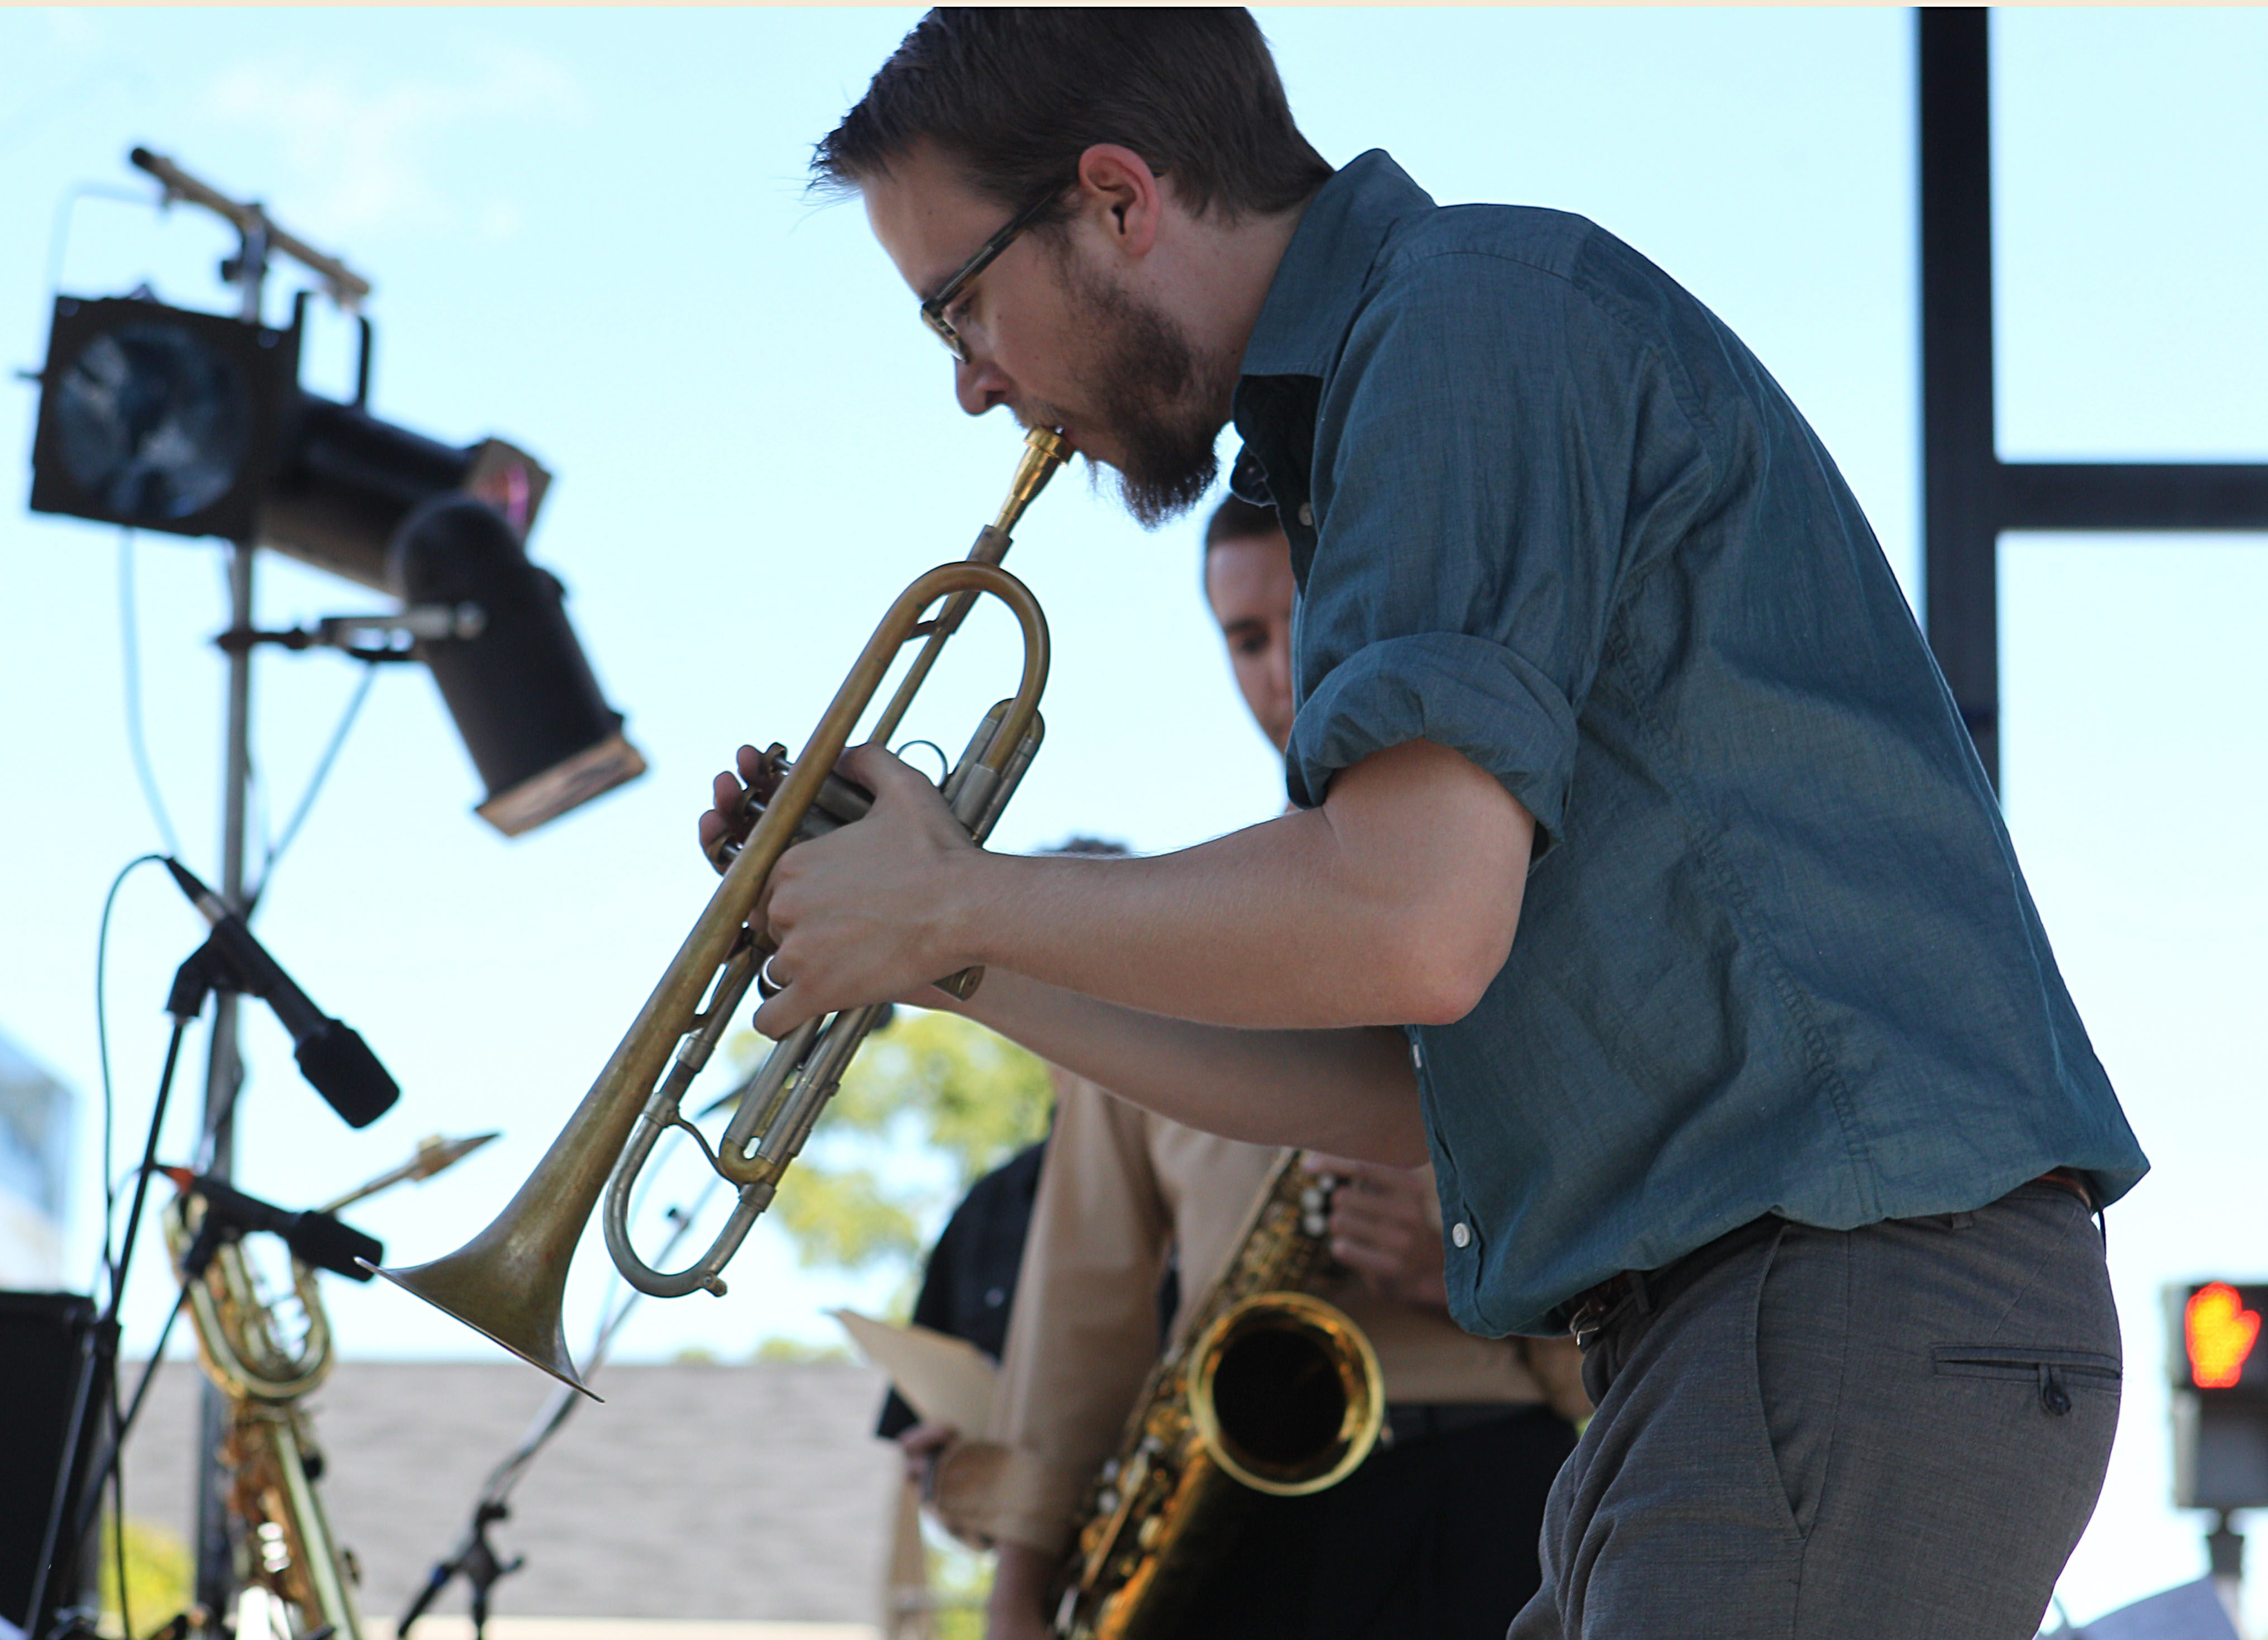 Dave Chisholm performs on trumpet at the Lewiston Jazz Festival on Aug. 24, 2013. (Sharon Cantillon/Buffalo News)